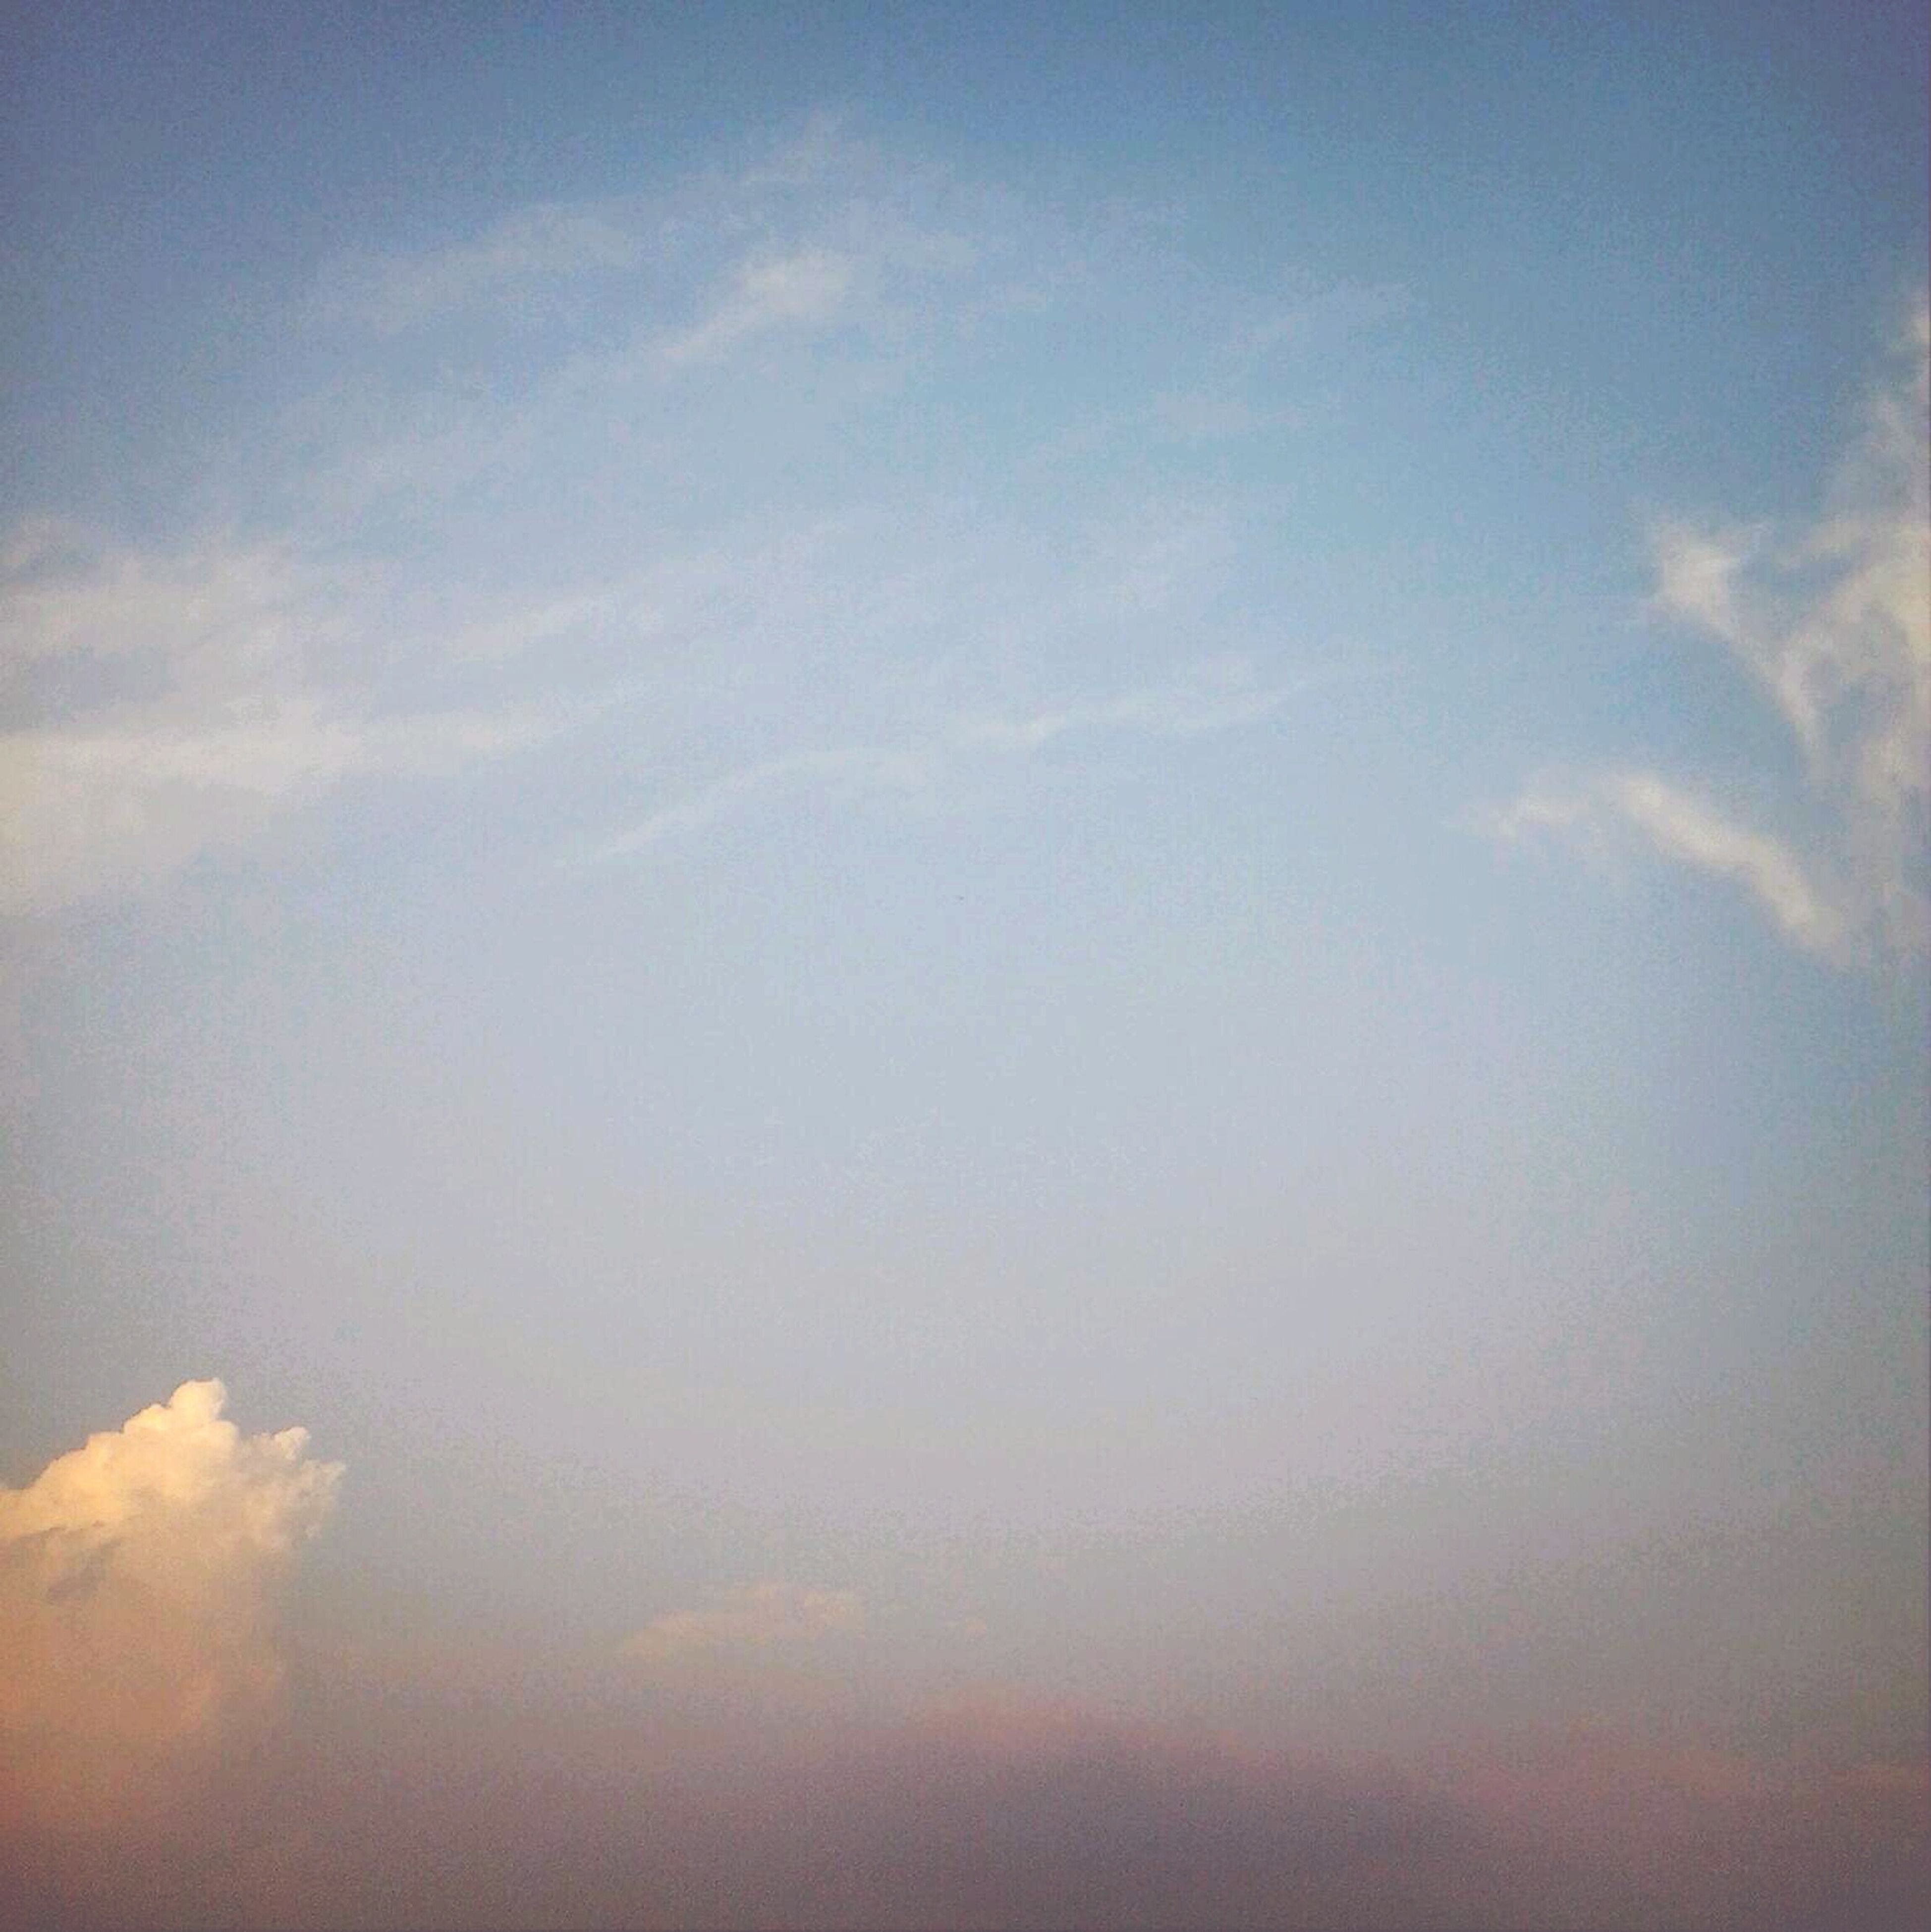 sky, tranquility, scenics, tranquil scene, beauty in nature, cloud - sky, nature, low angle view, idyllic, cloud, blue, cloudy, sky only, outdoors, no people, cloudscape, backgrounds, sunset, day, majestic